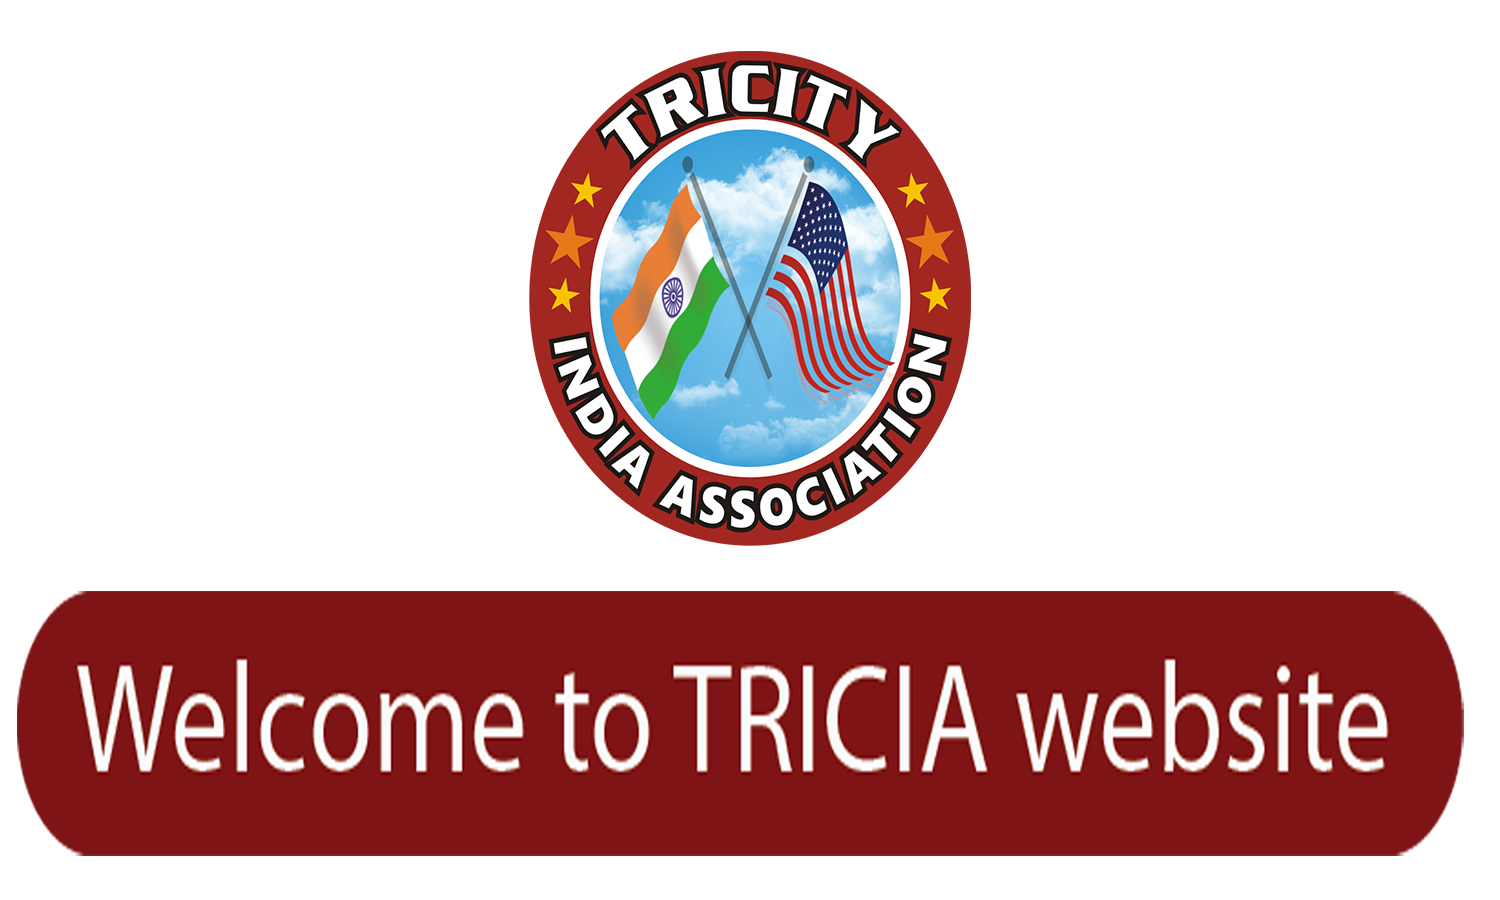 http://triciany.org/wp-content/uploads/2017/03/Tricia-welcome.jpg